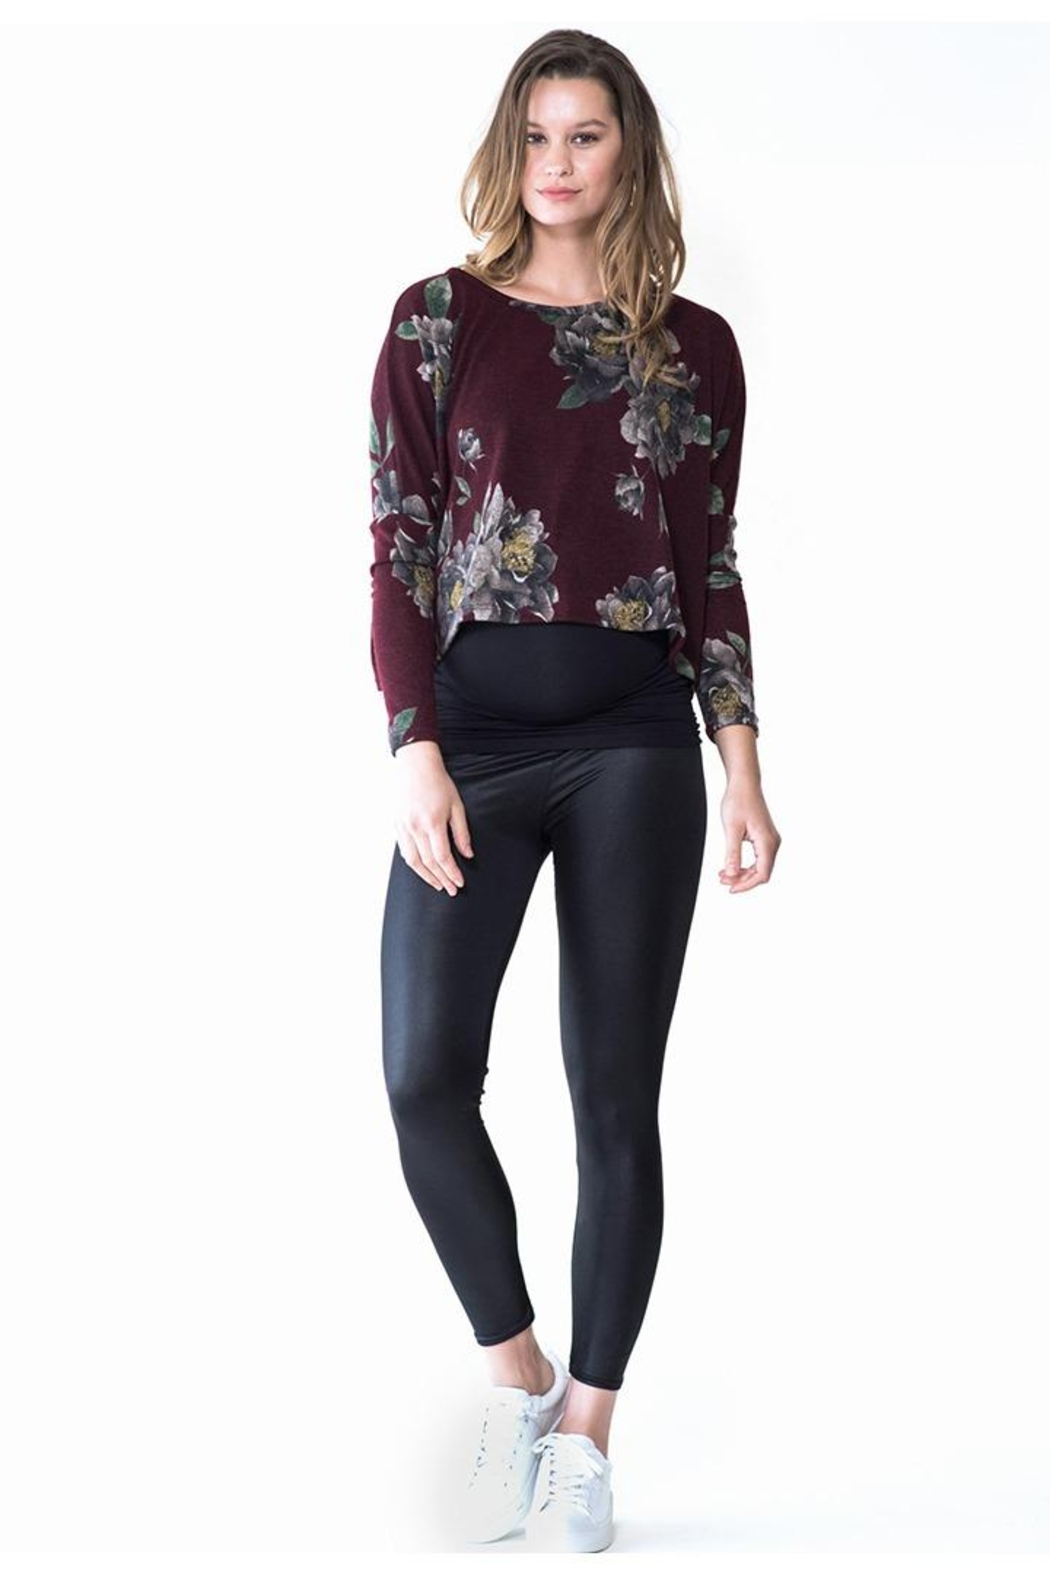 Audrey 3+1 Burgundy Floral Cropped Sweater - Main Image